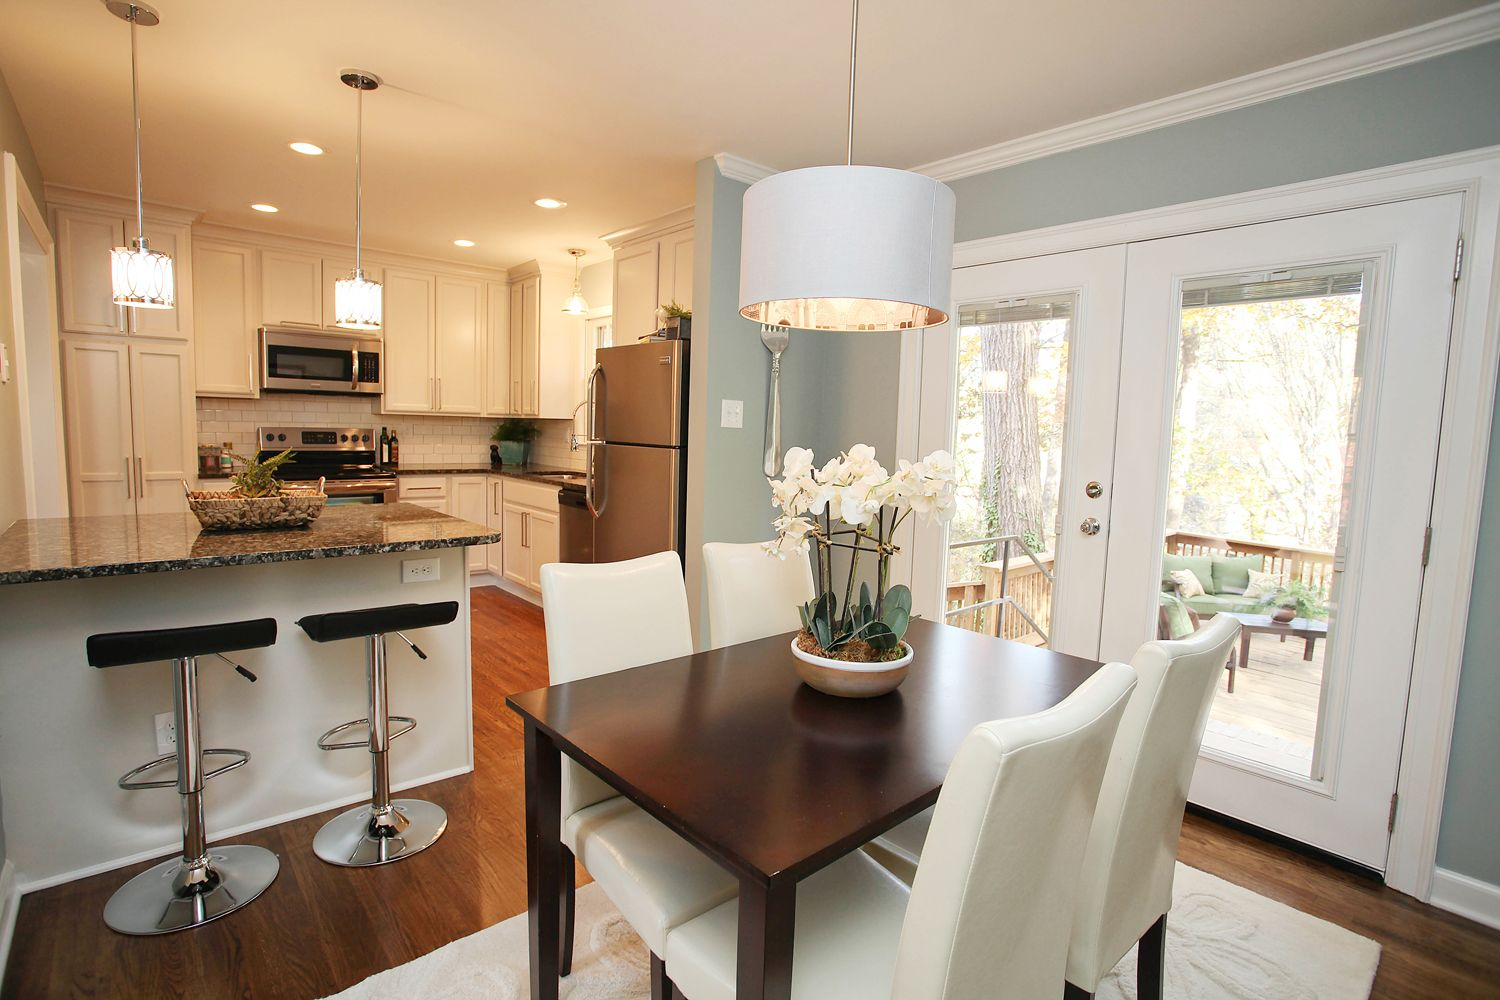 Split height kitchen island - Split Level Opened Up Kitchen Pendant Over Table And Island Are From Lowes